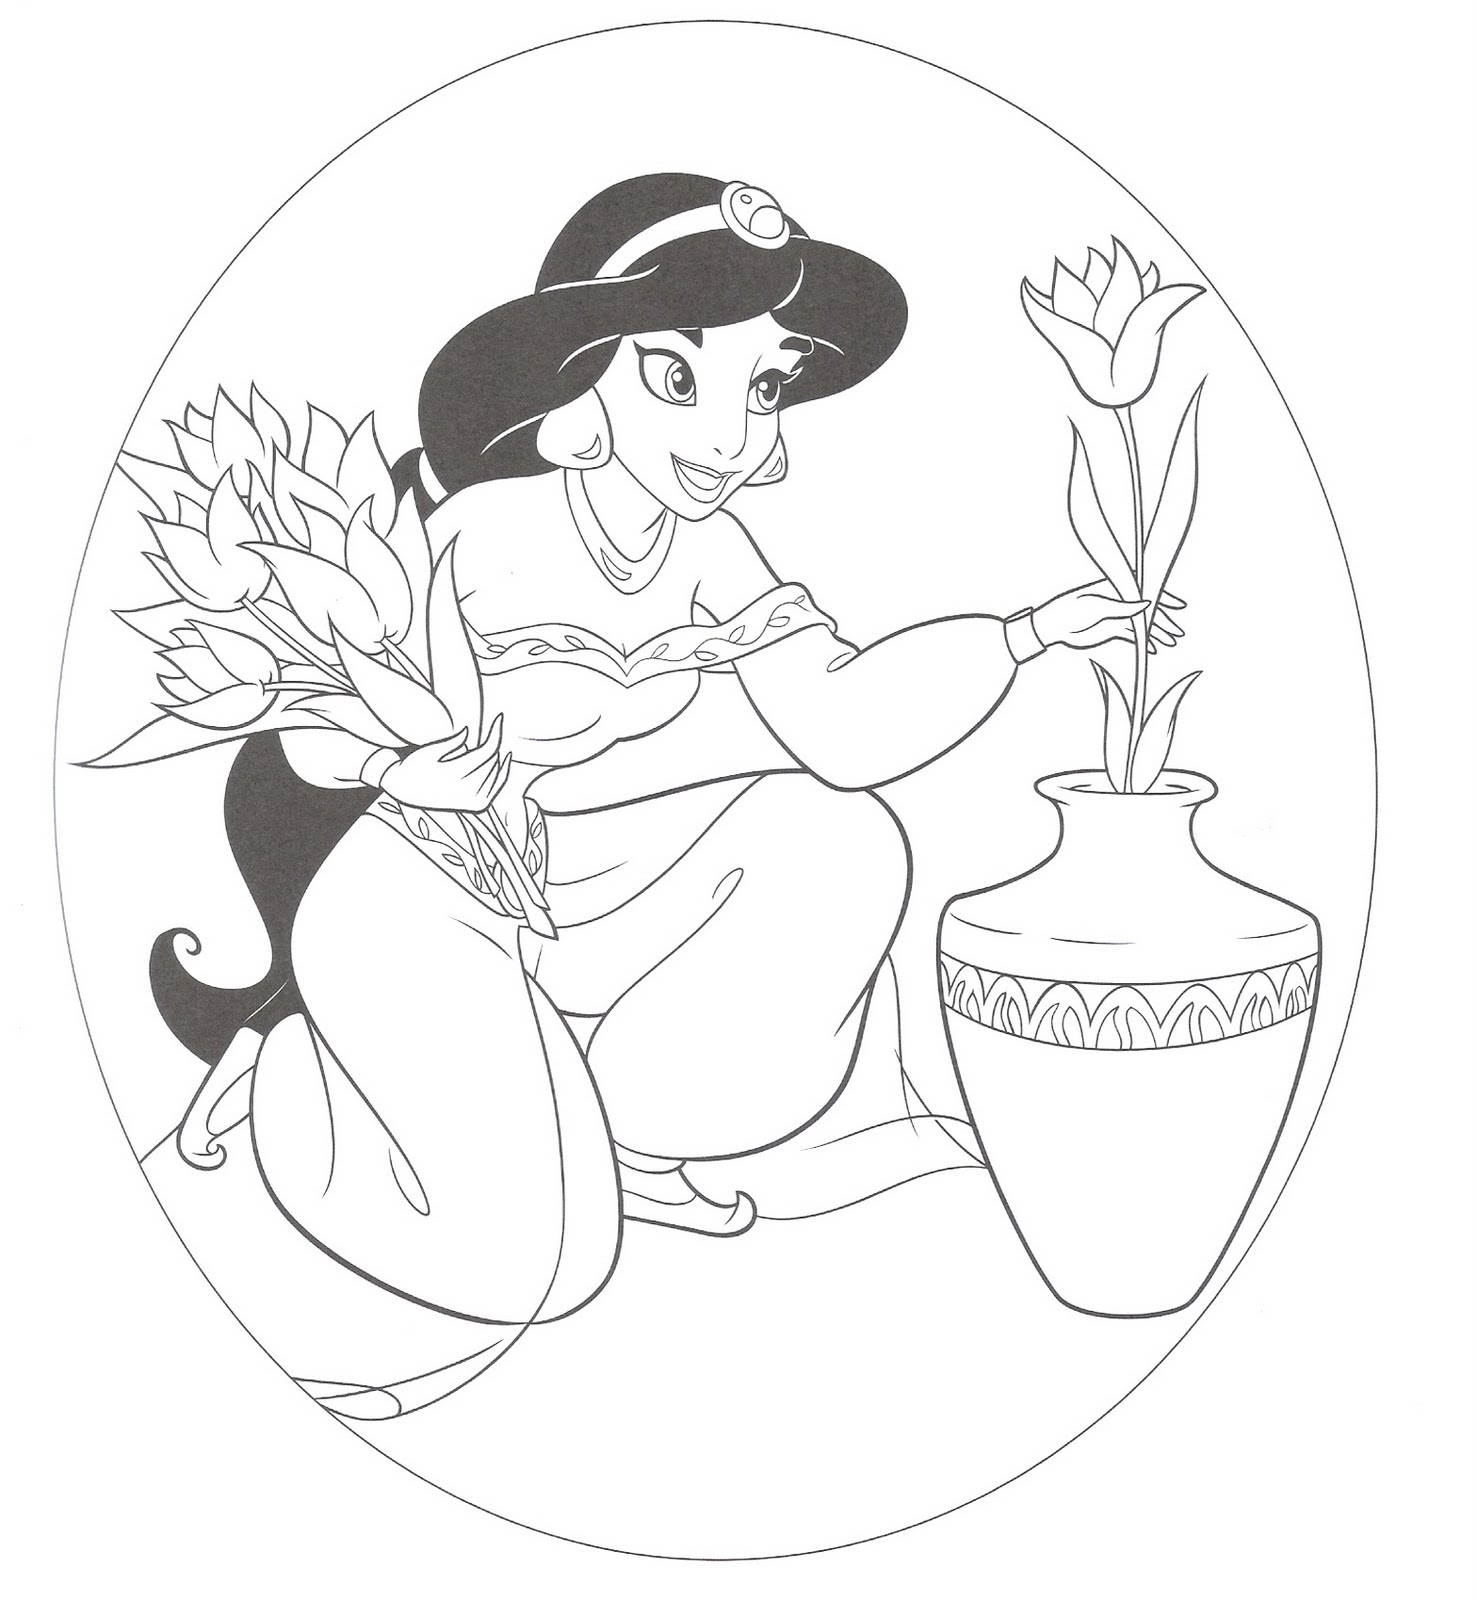 disney princess jasmine coloring pages - photo#13